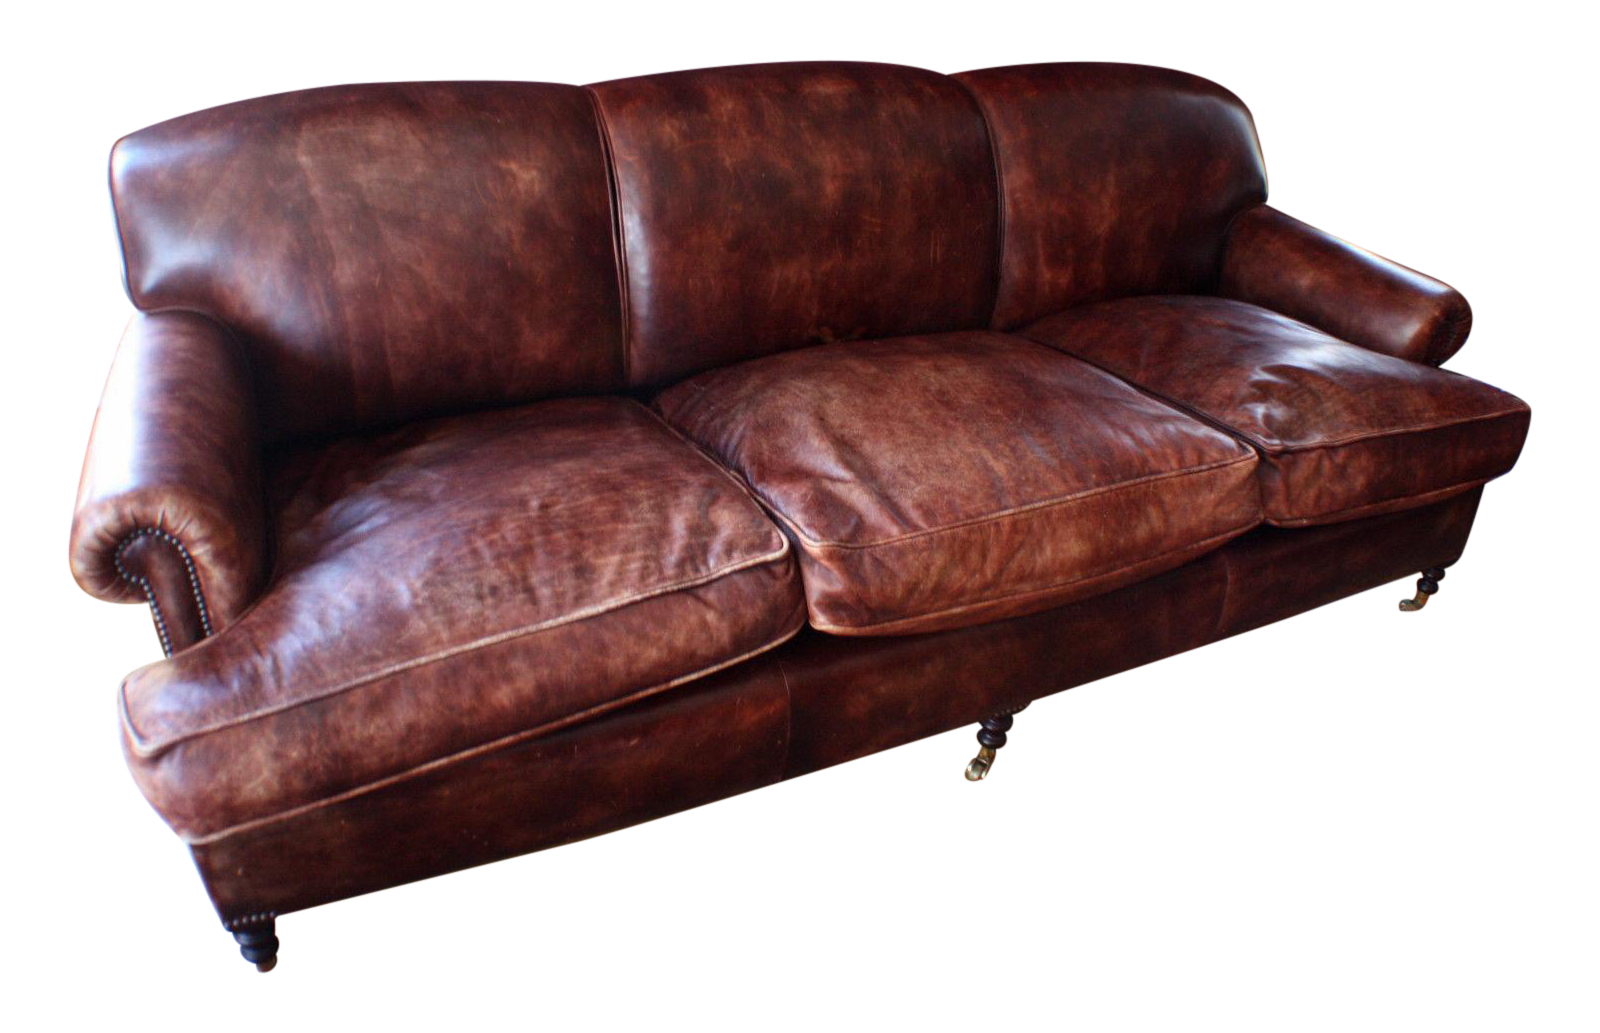 Chesterfield sofa gebraucht  Terracotta Leather Sofa Luxury Jh Hicolity Terracotta Leather Sofa ...